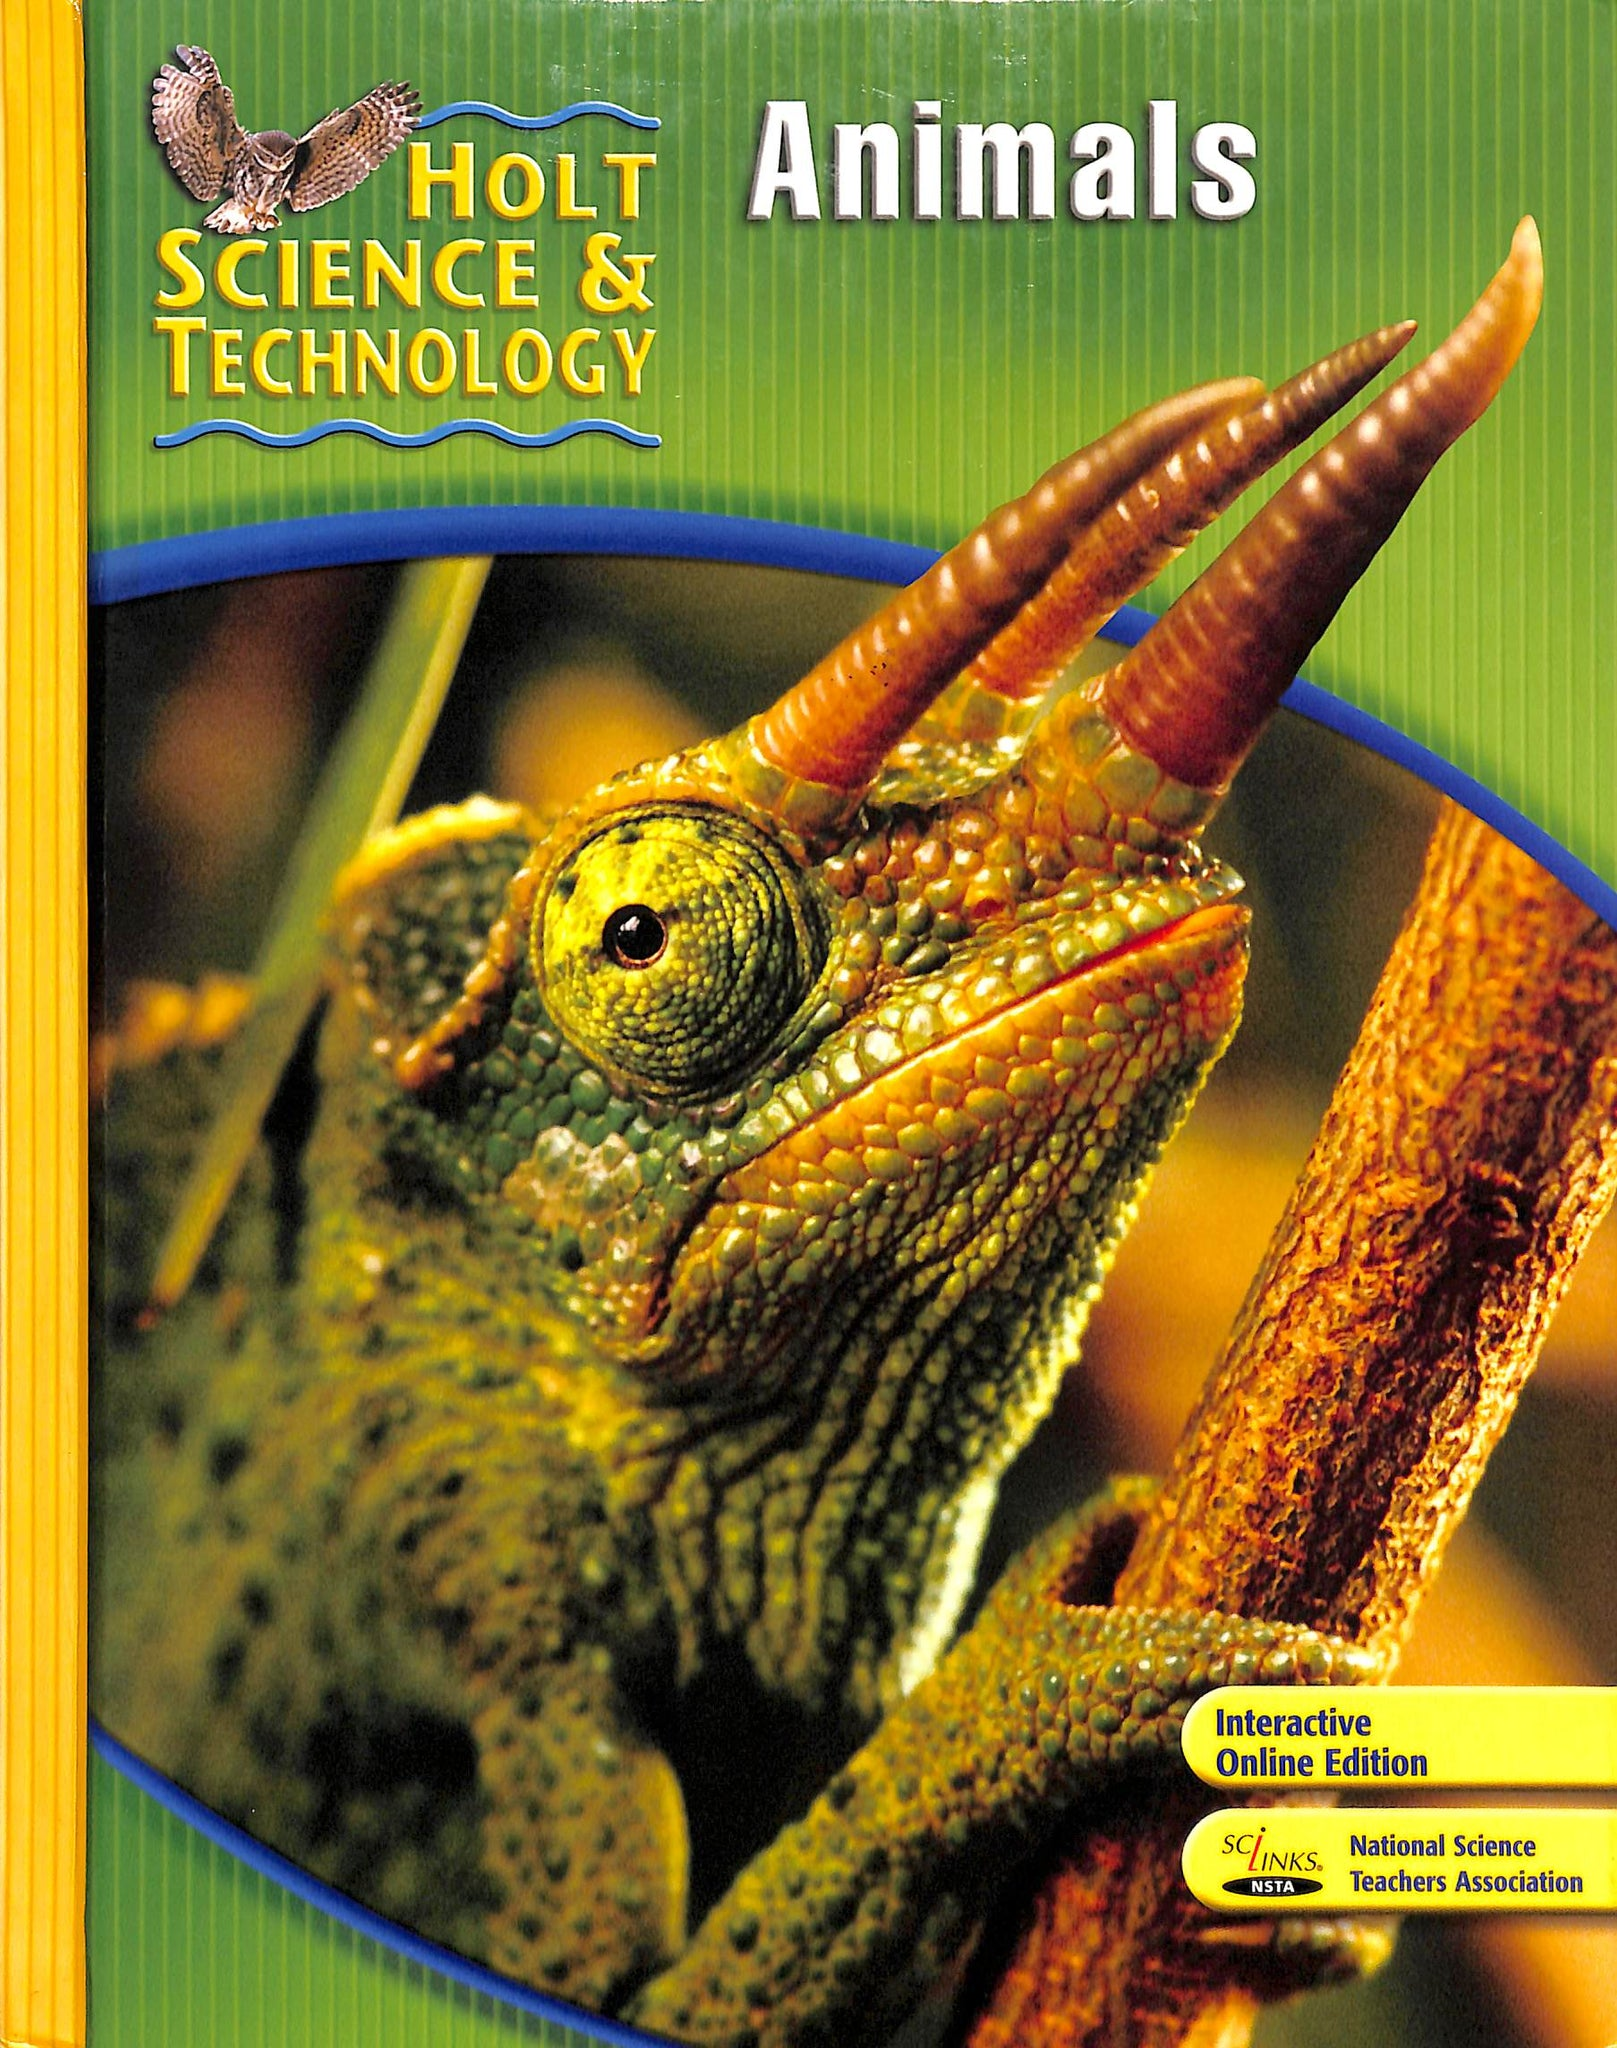 Holt science and technology online textbook